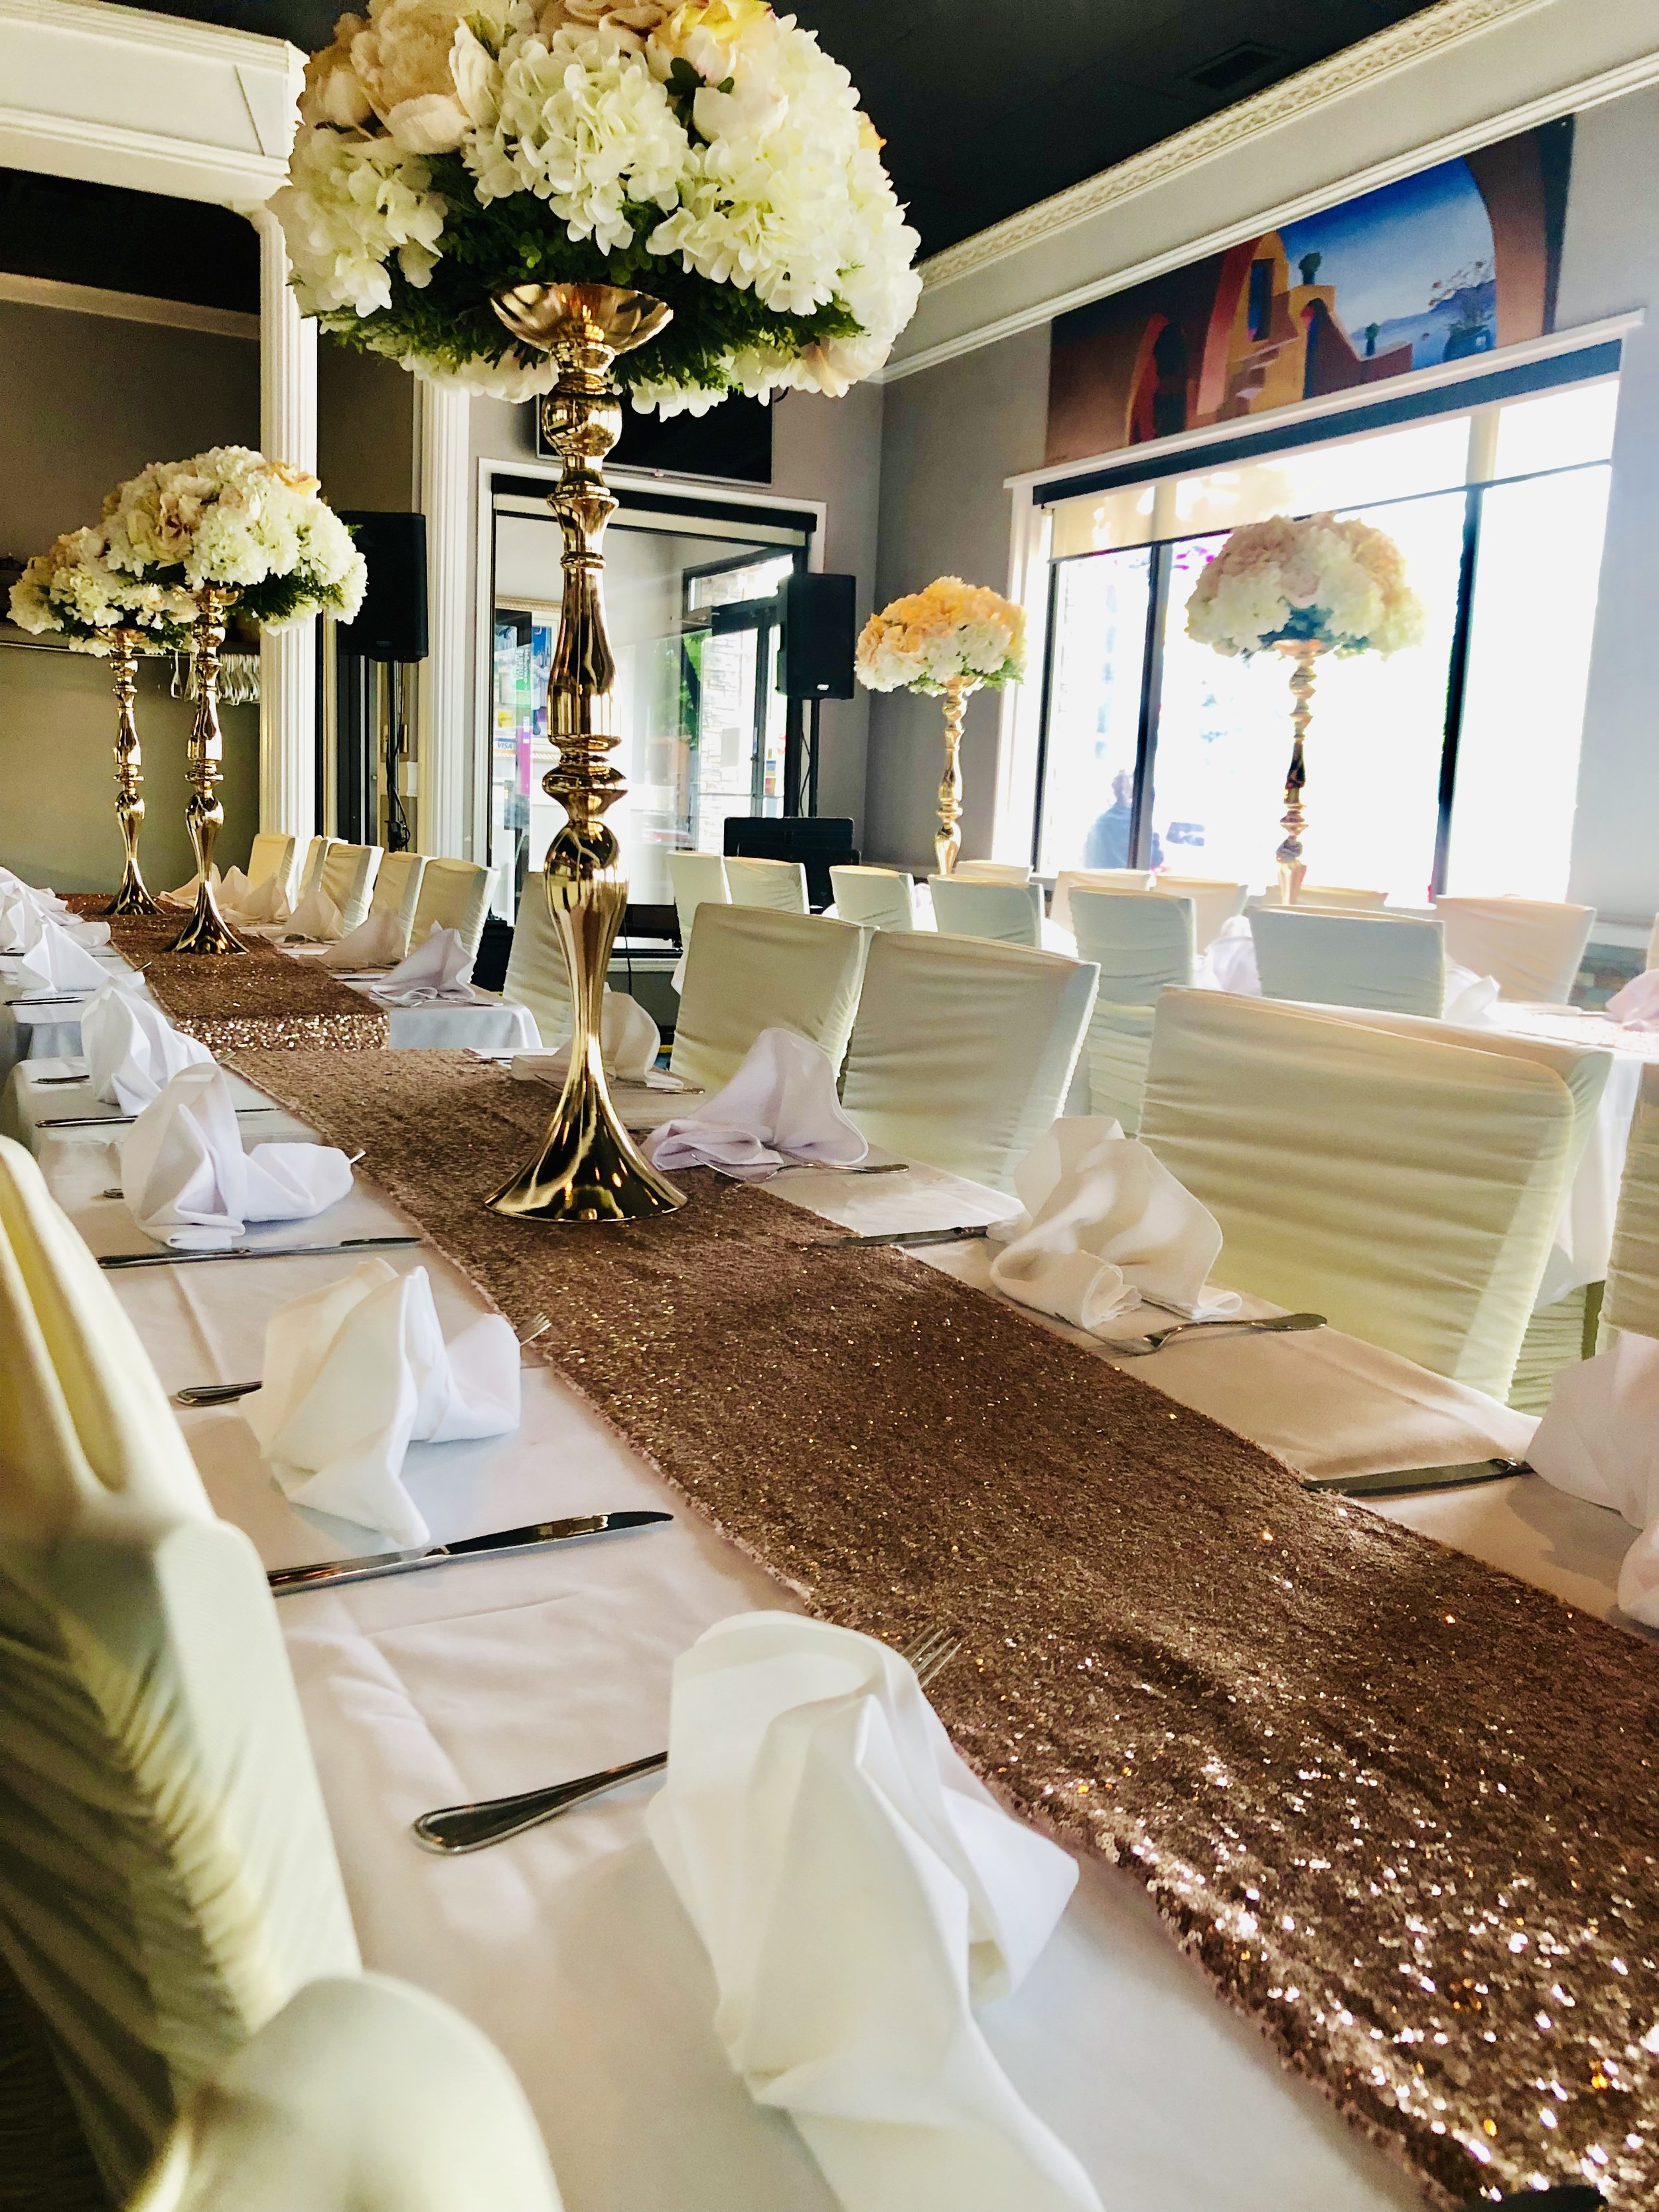 Private Event Dates - We will not be accepting any tables for these evenings listed:Friday, December 6/19Saturday, December 7/19Saturday, December 14/19